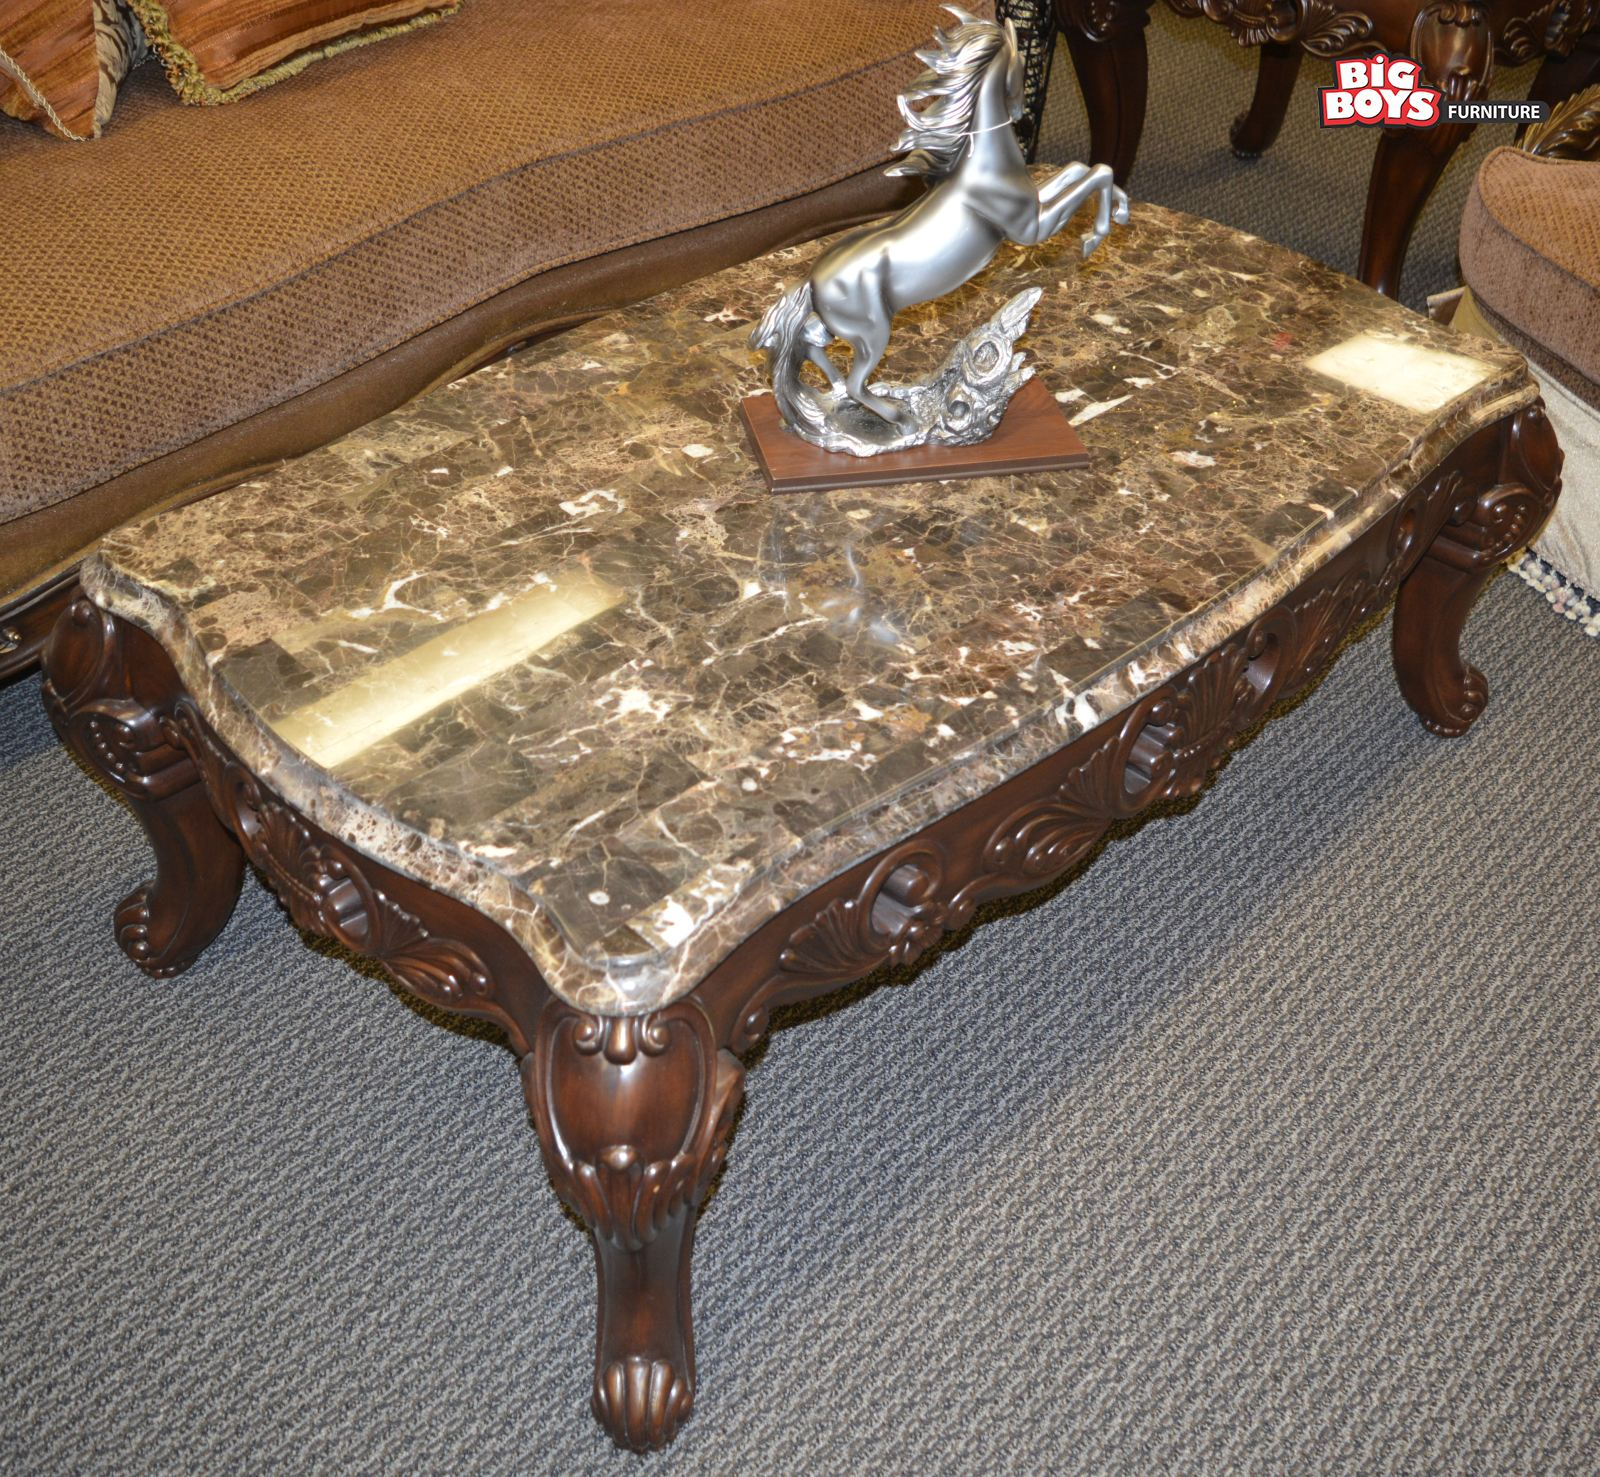 Big Boys Furniture give discount on beautiful center table with latest desings